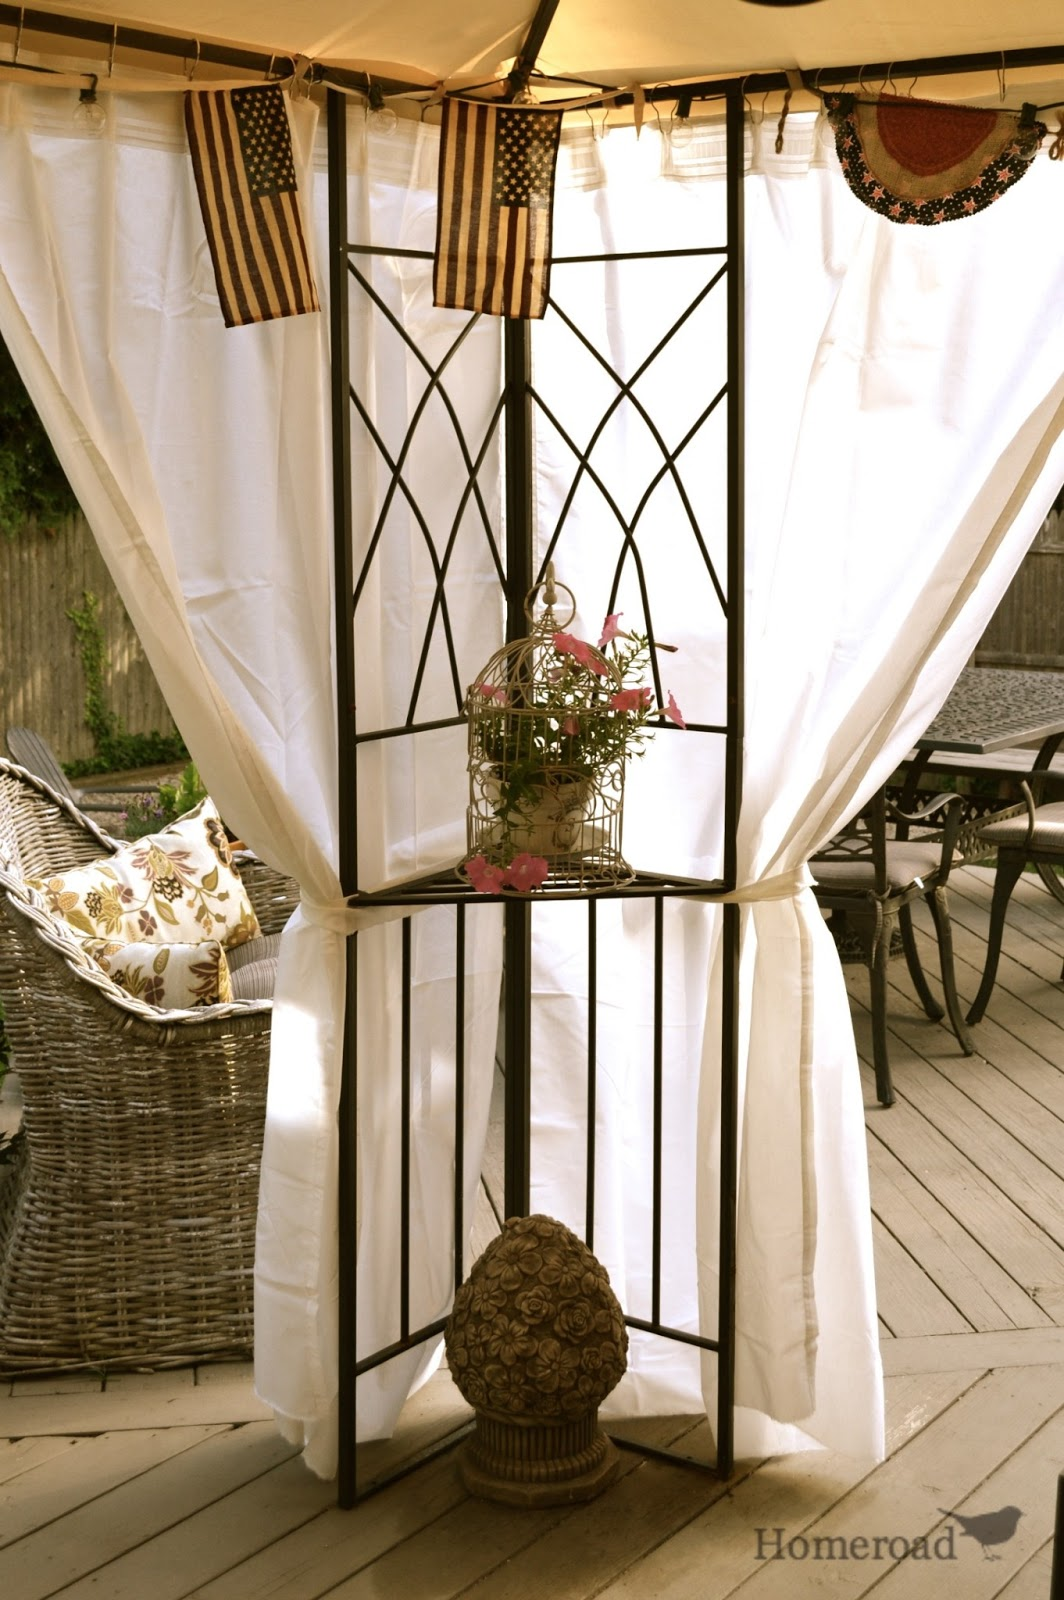 DIY Outdoor Canopy Curtains & Homeroad: DIY Outdoor Canopy Curtains